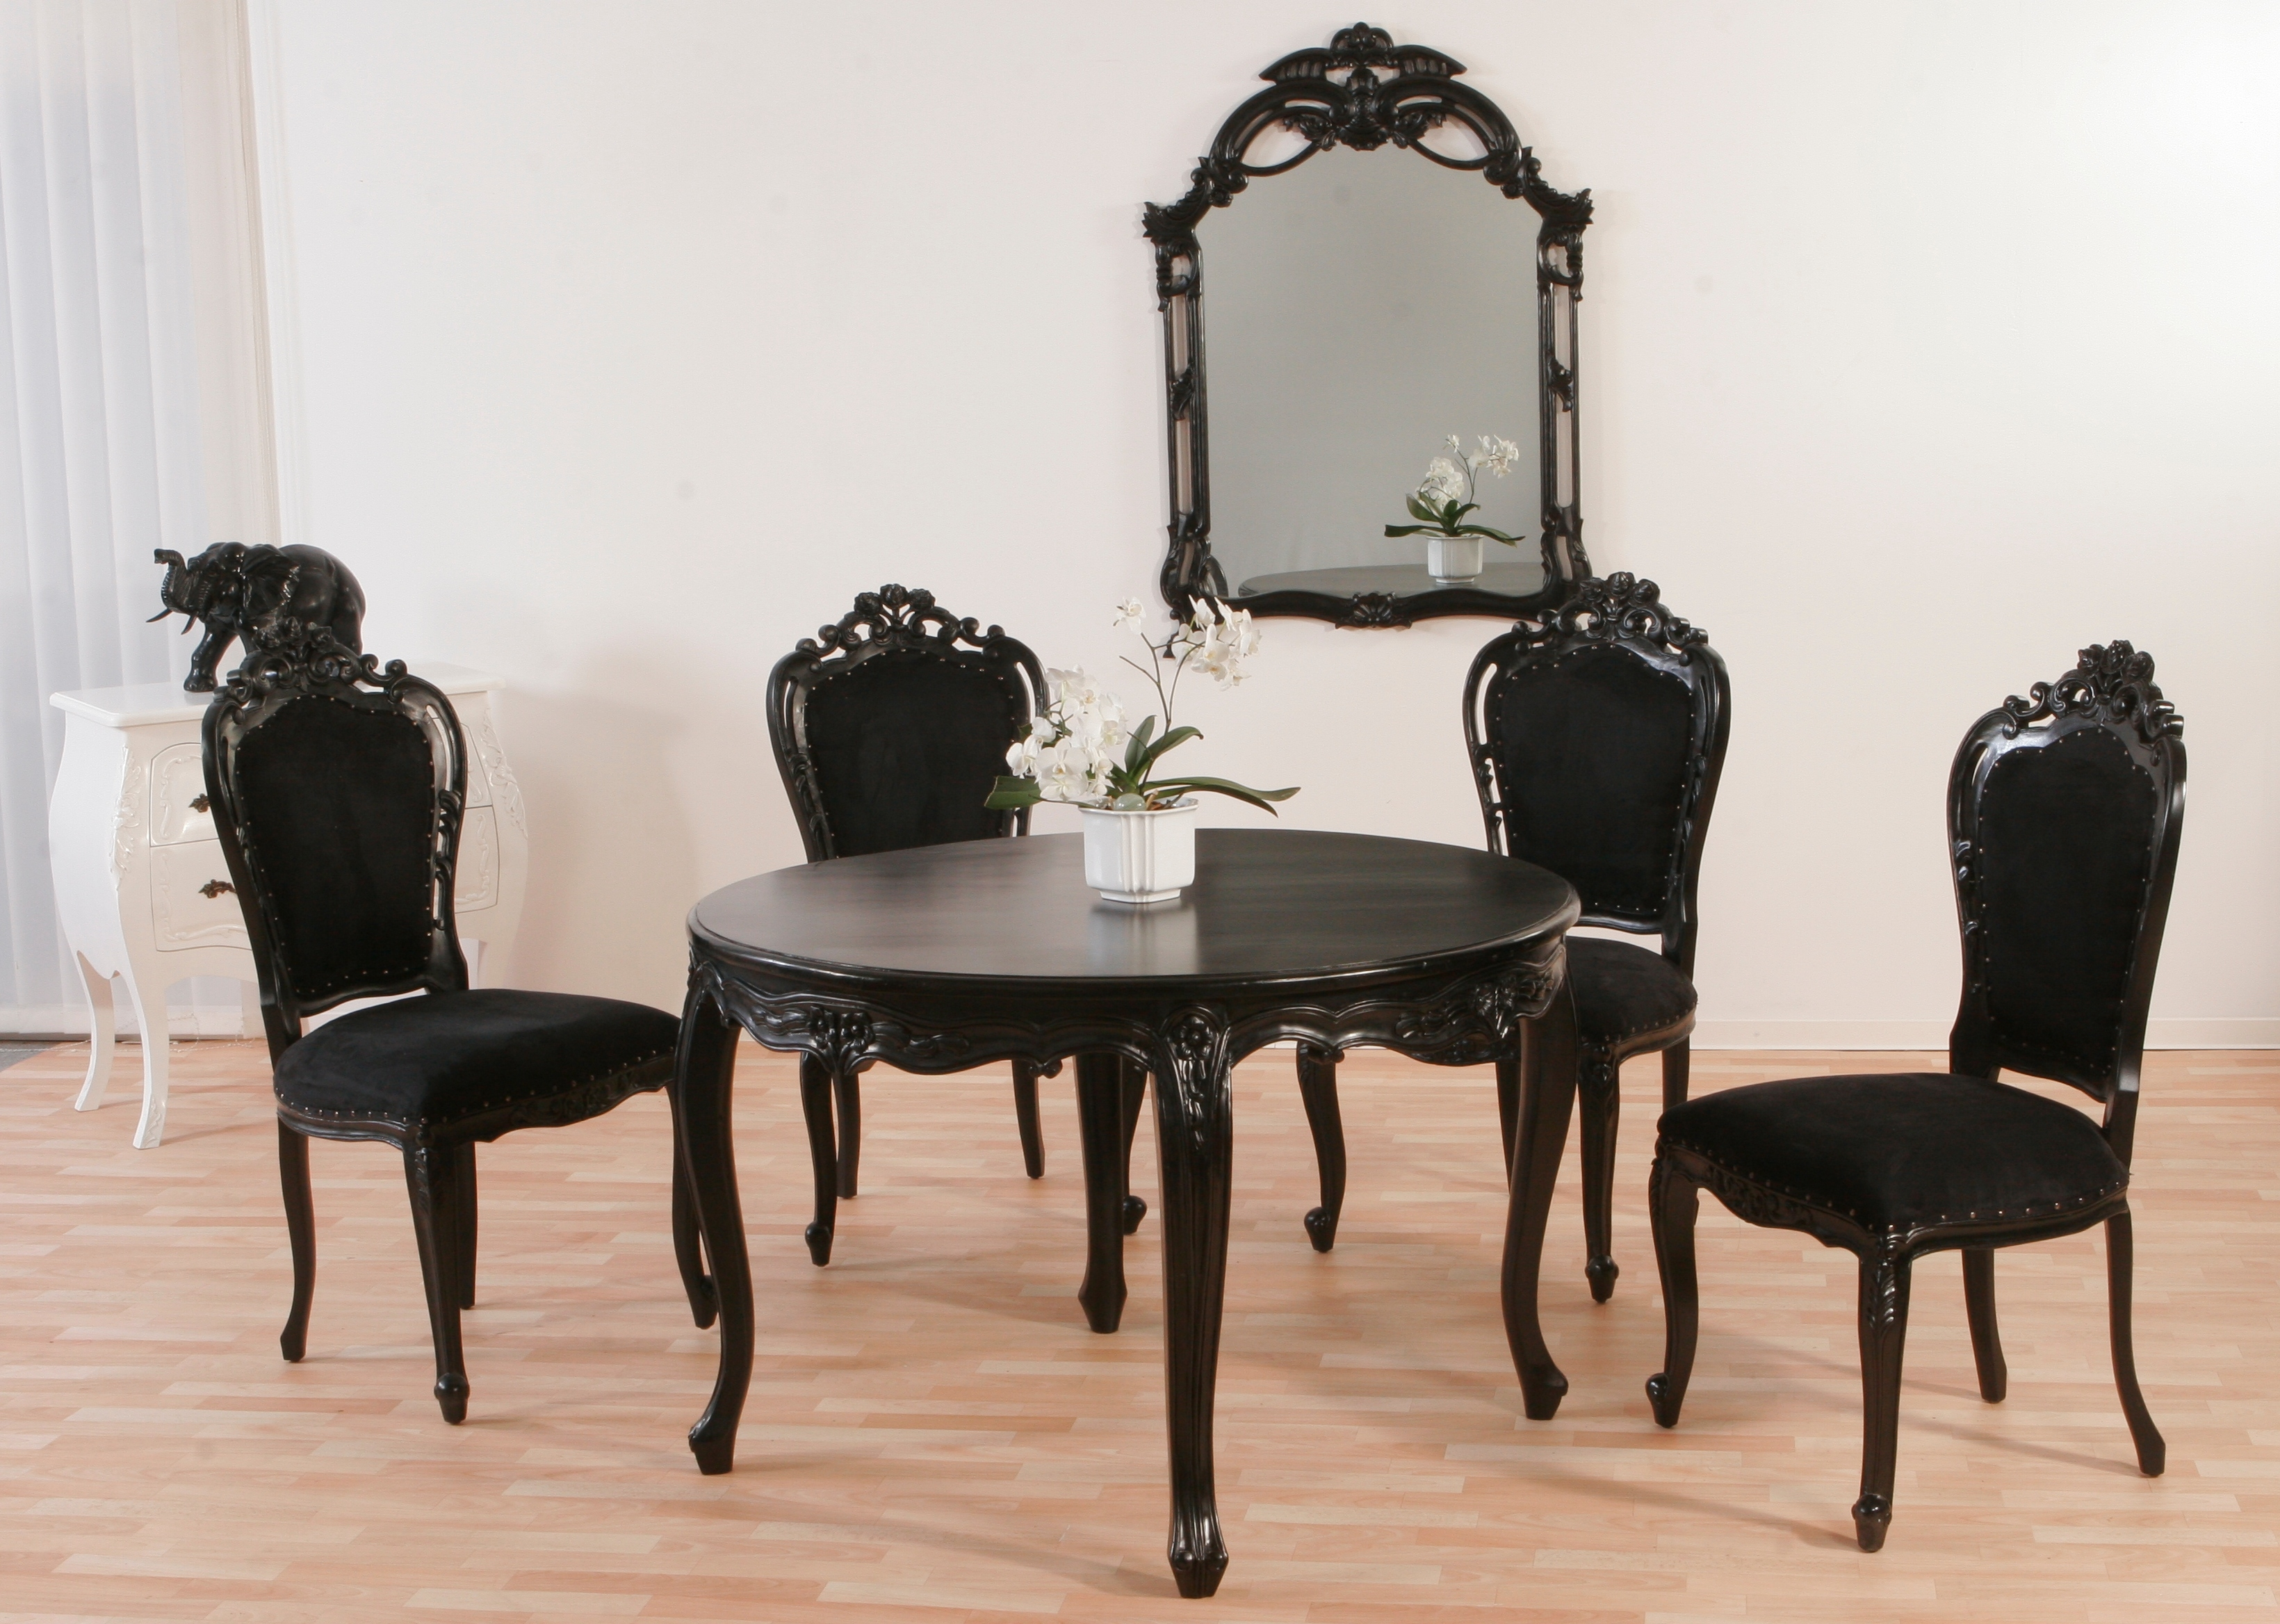 esstisch barock mahagoni schwarz lionsstar gmbh. Black Bedroom Furniture Sets. Home Design Ideas